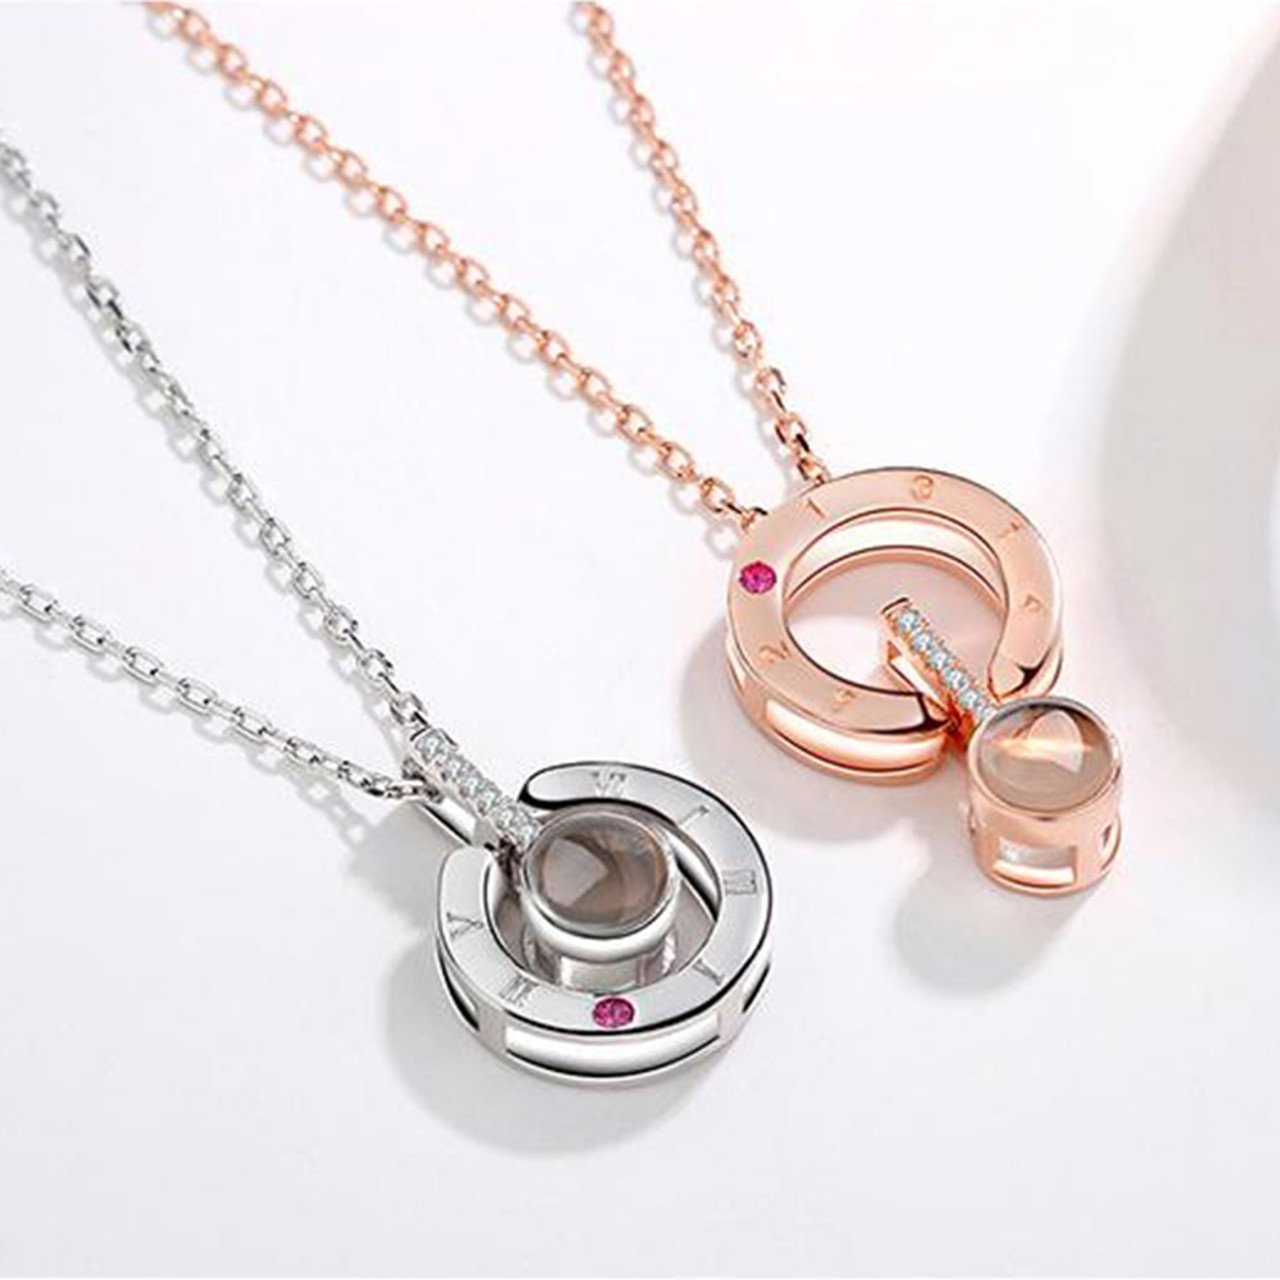 100 Languages Crystal Eyes Shape Pendant Projection Necklace For Memory of LOVE